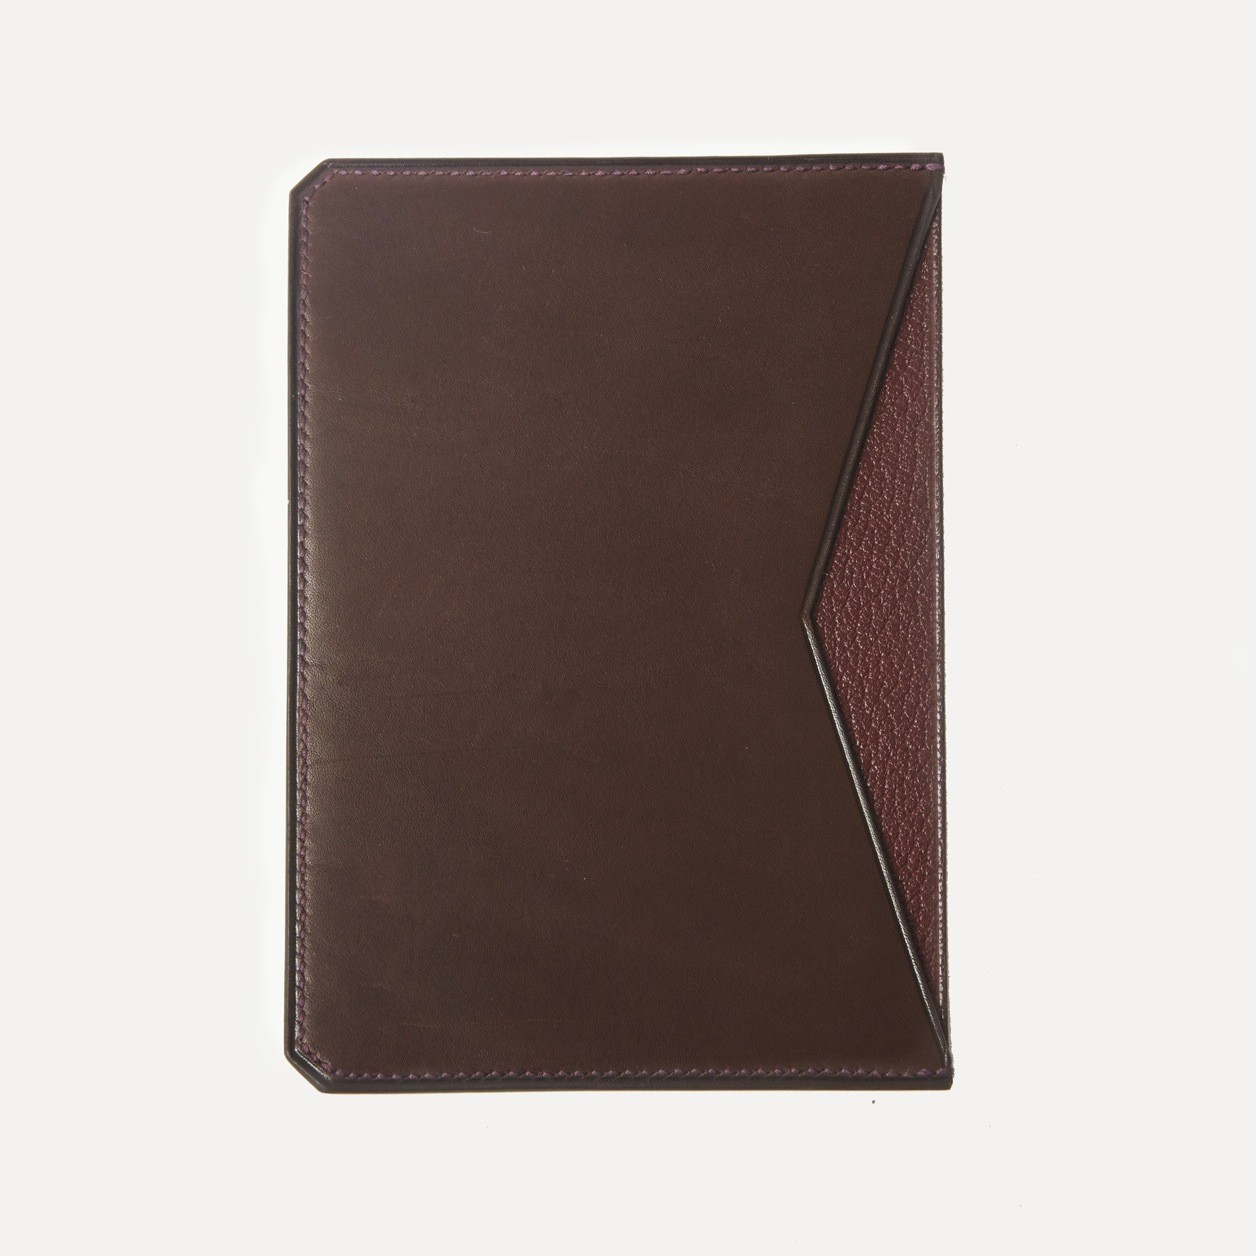 Turbigo in chocolate calfskin and burgundy kidskin lining